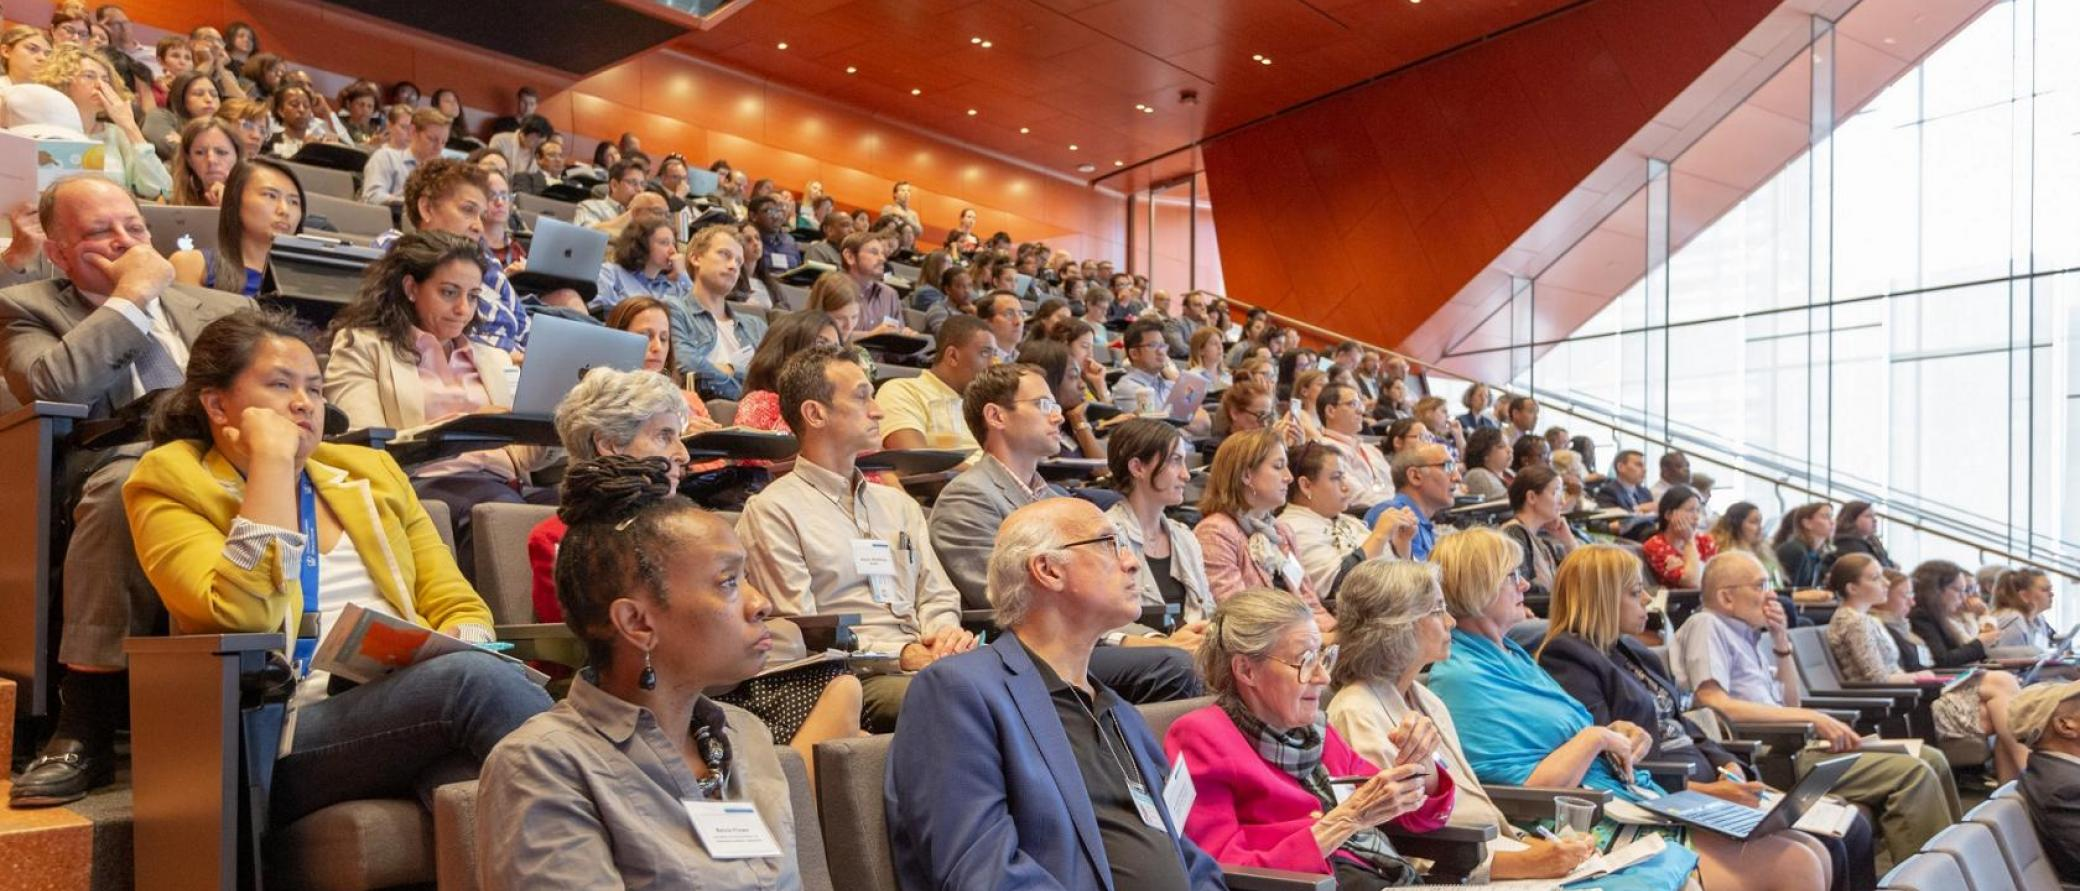 People in an auditorium attending a seminar